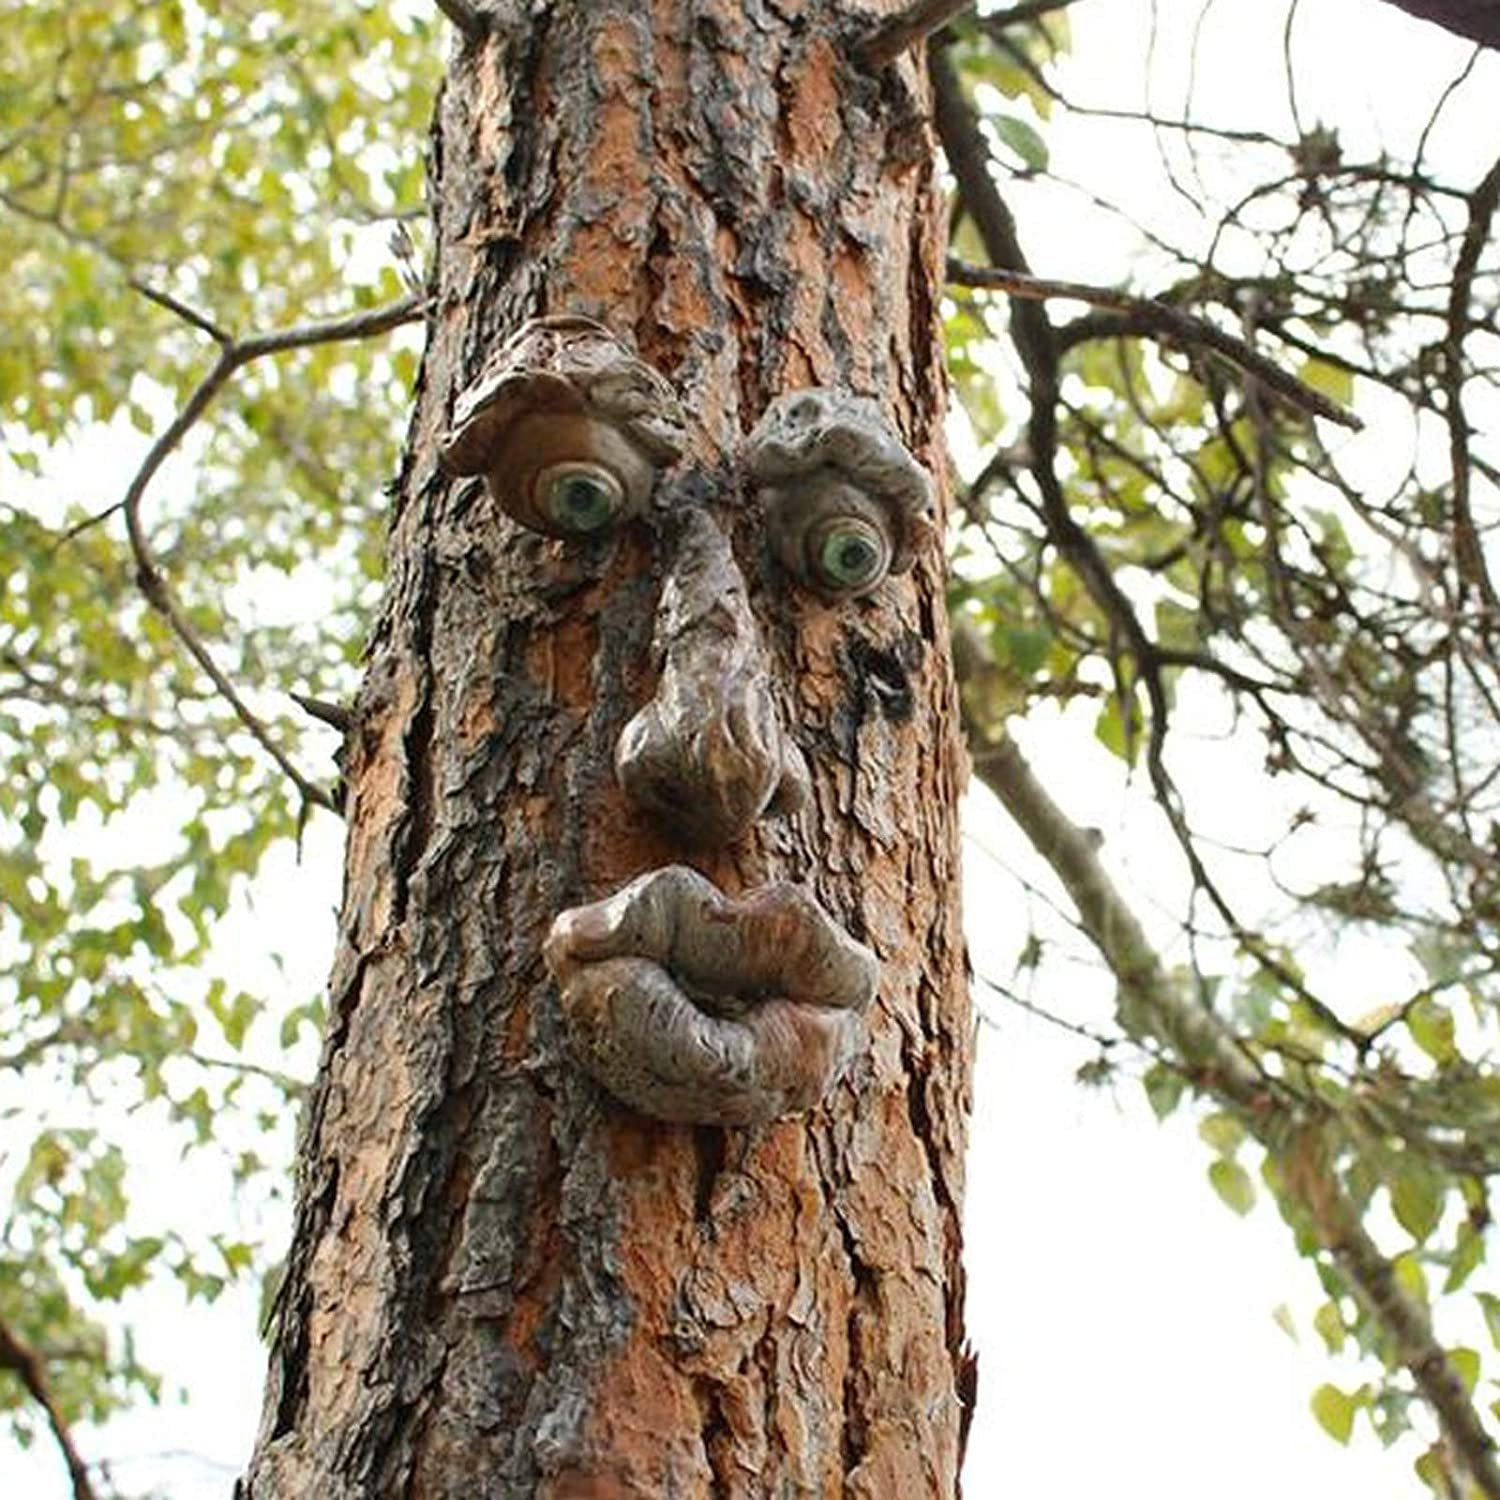 TOTAMALA Easter Tree Monsters Outdoor Bark Ghost Face Tree Faces Decor Glow Eyes in Dark Fun Old Man Tree Sculpture Outdoor Yard Art Garden Decorations (A)